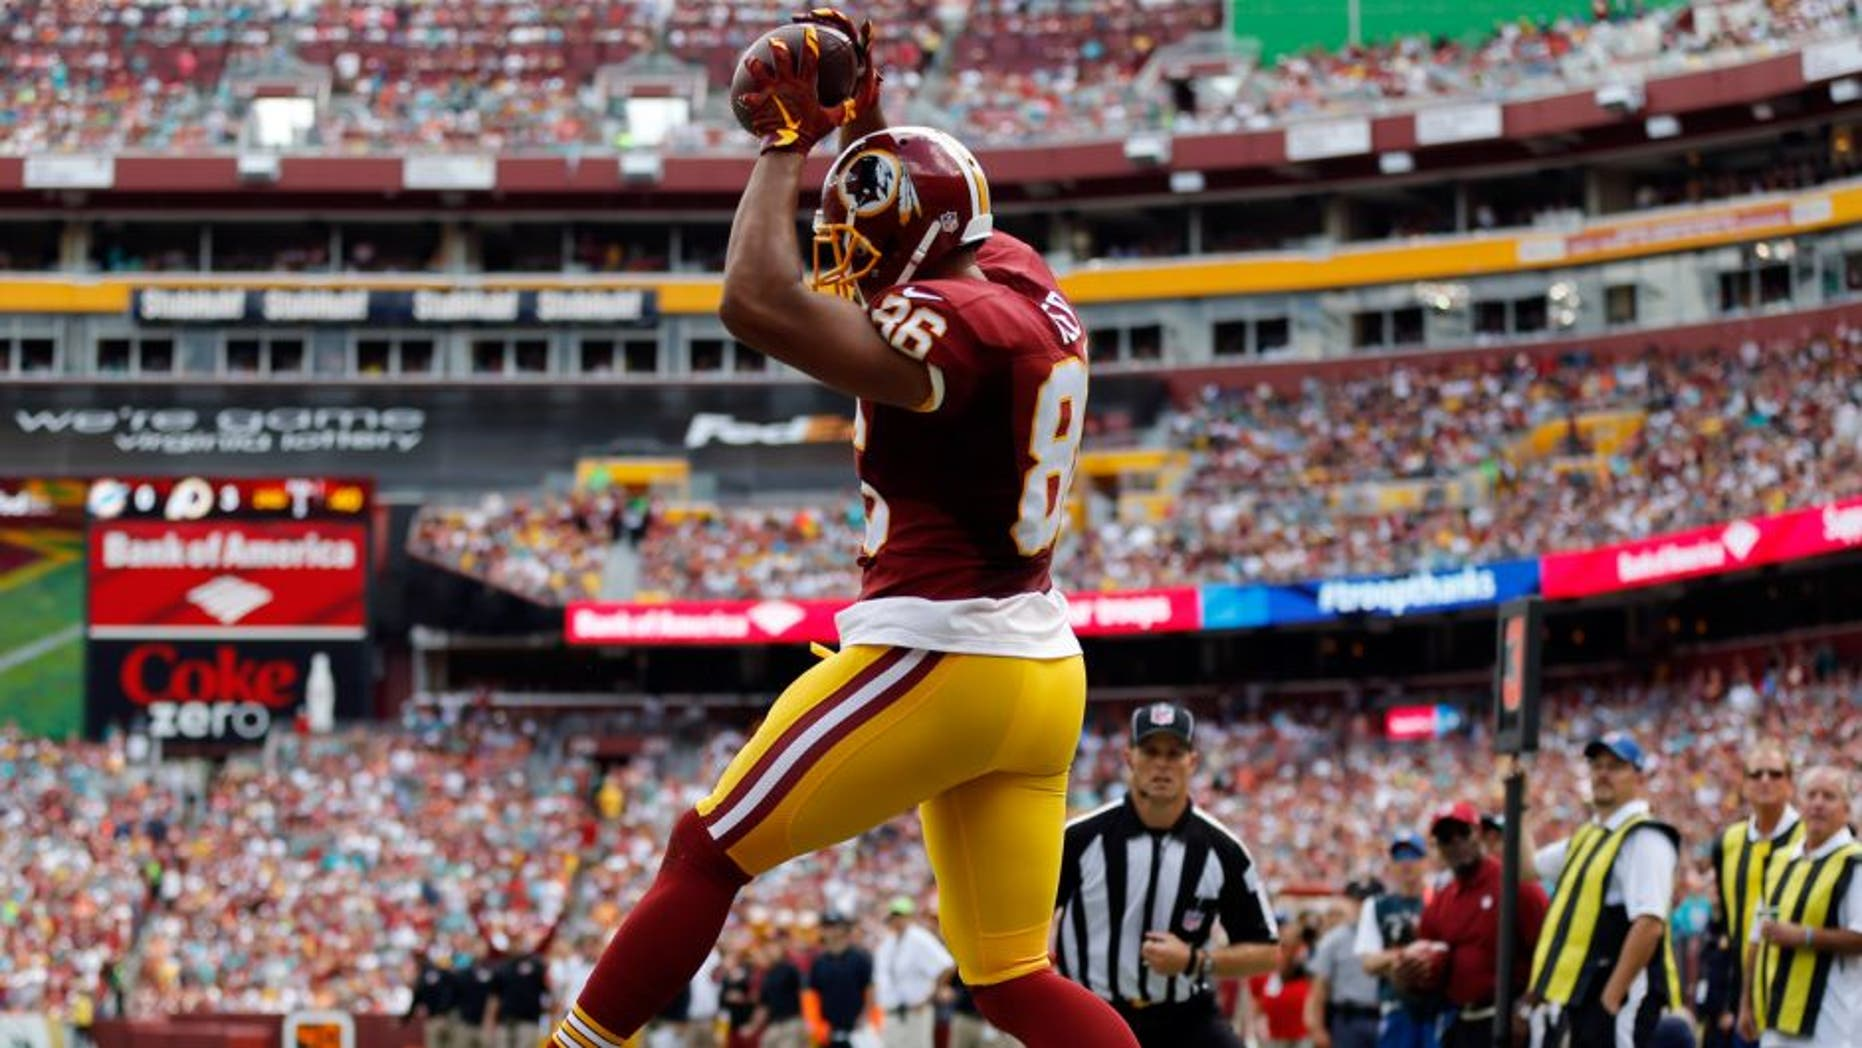 Washington Redskins tight end Jordan Reed (86) catches a touchdown pass over Miami Dolphins strong safety Reshad Jones (20) during the first half of an NFL football game Sunday, Sept. 13, 2015, in Landover, Md. (AP Photo/Patrick Semansky)